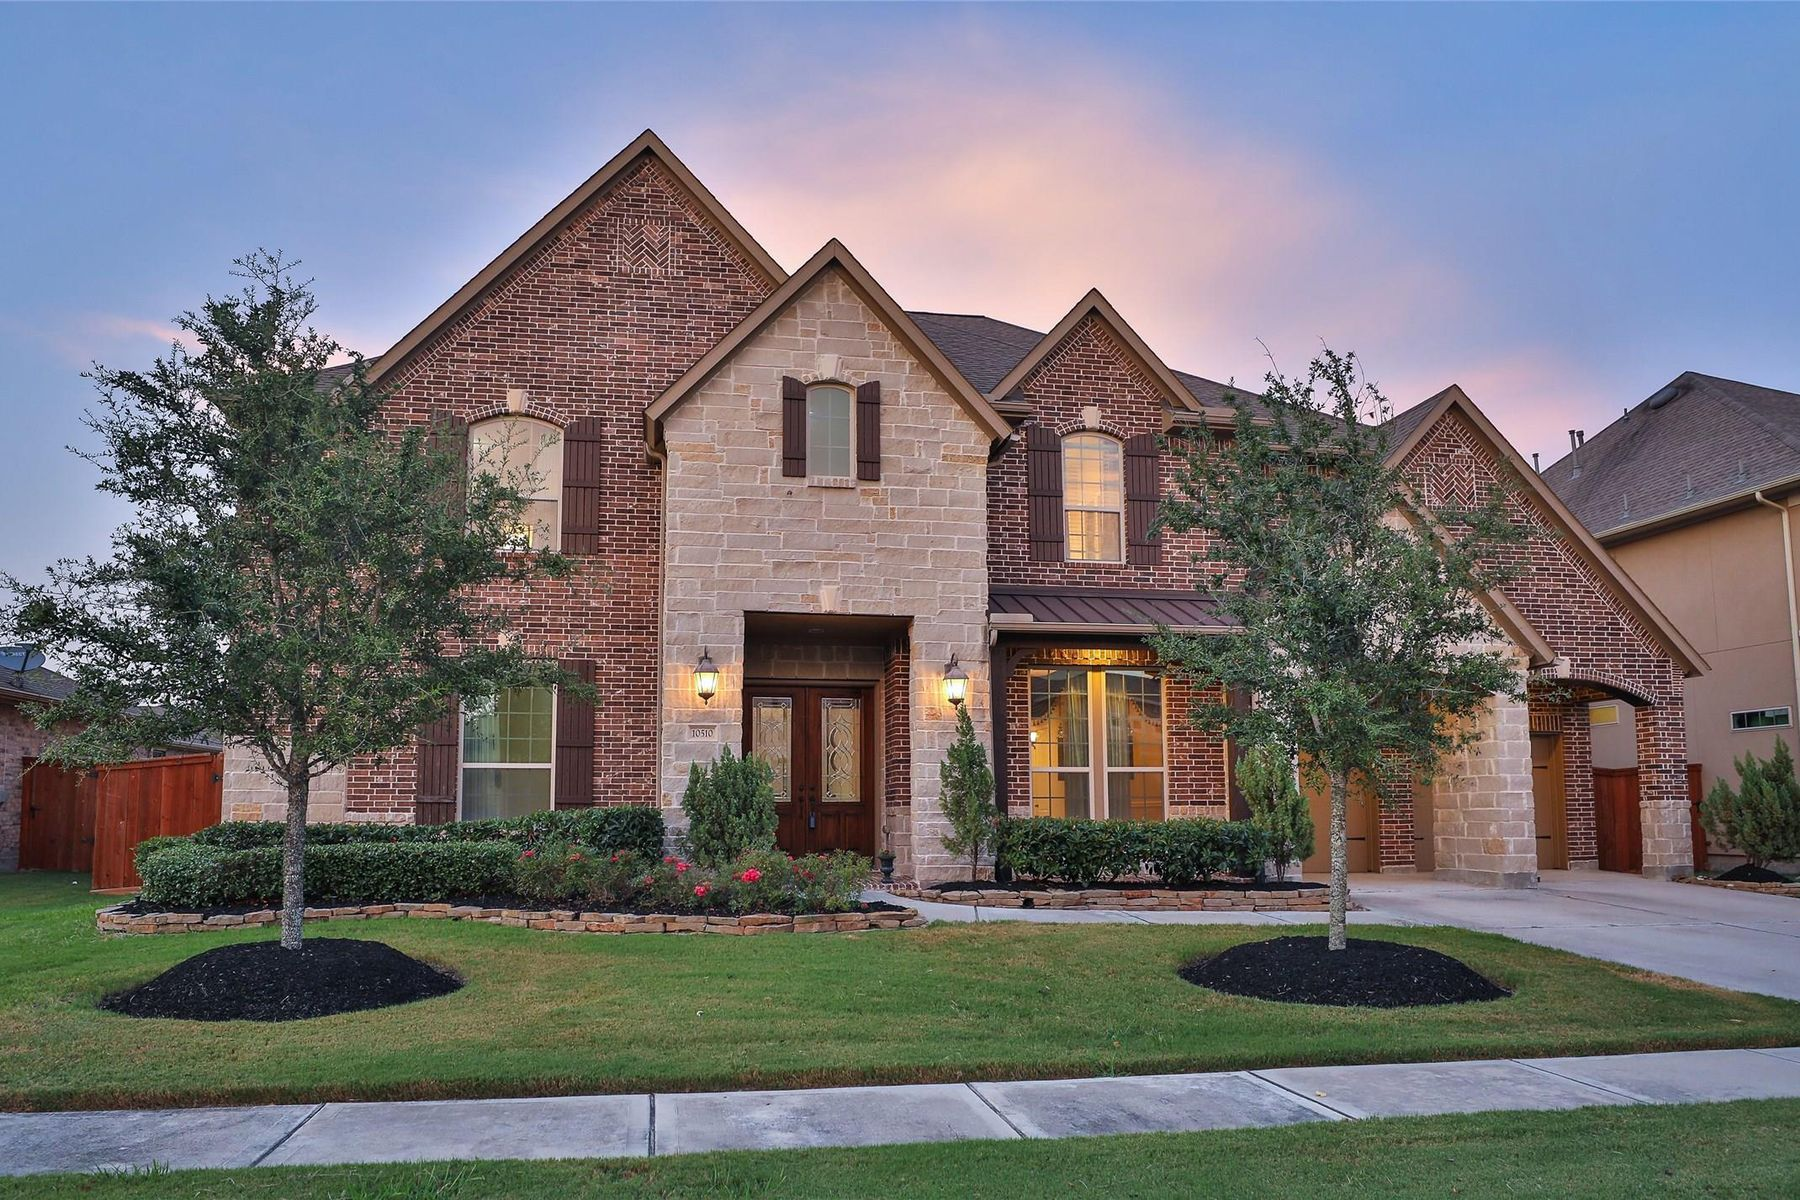 Single Family Homes for Sale at 10510 Texas Redbud Court Cypress, Texas 77433 United States